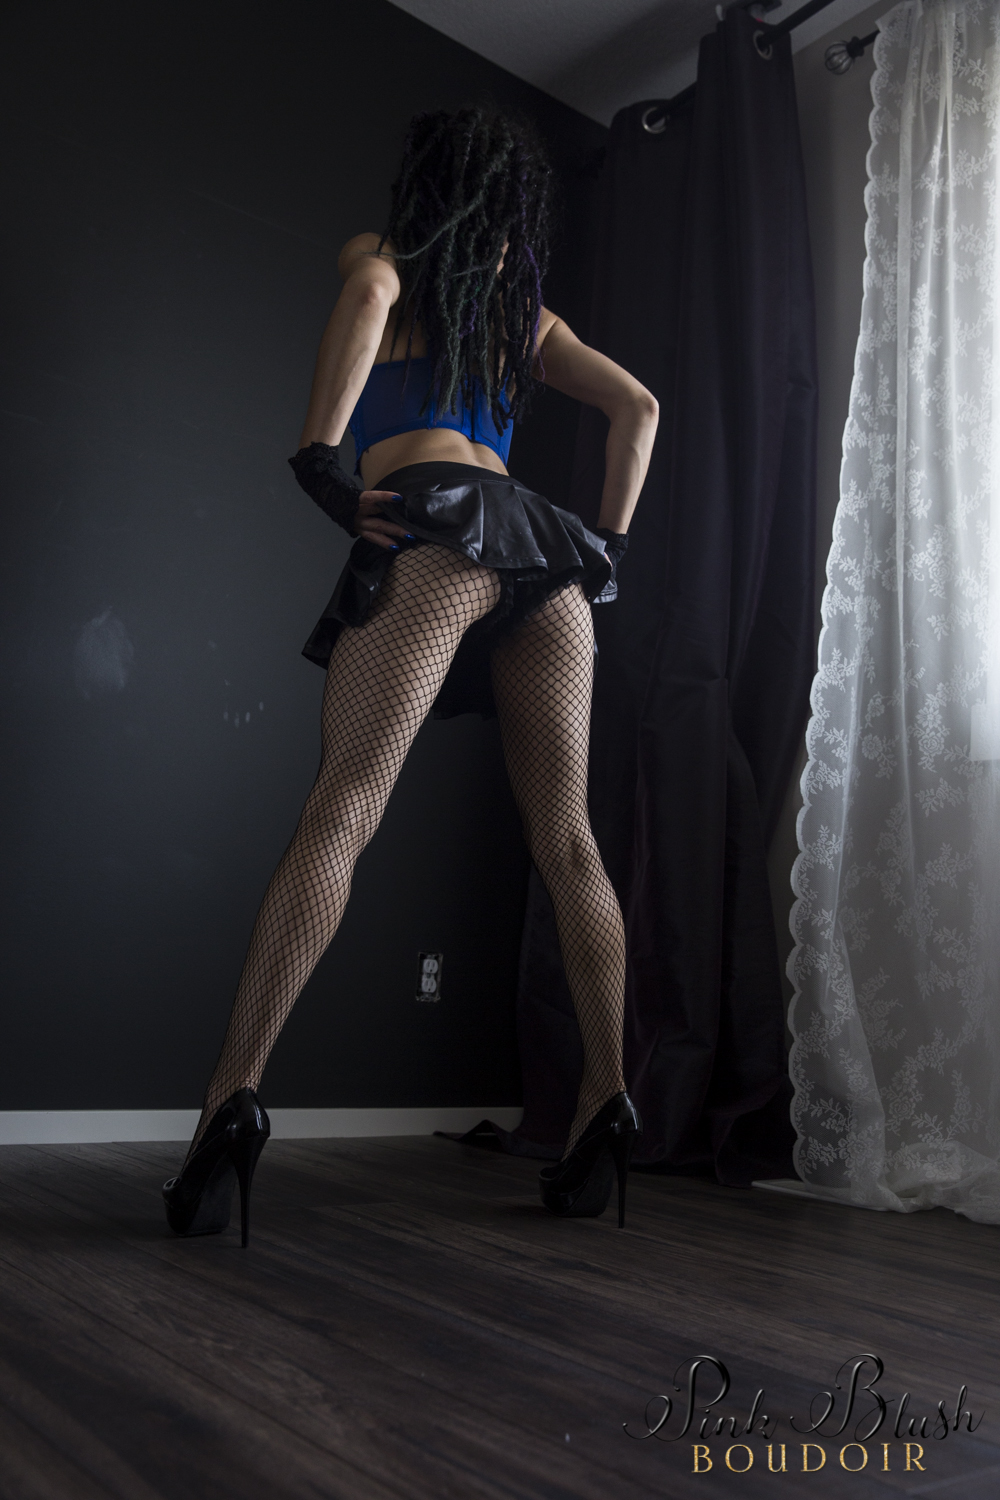 Boudoir Photography Edmonton, woman standing in a short skirt flipping it up to reveal her butt